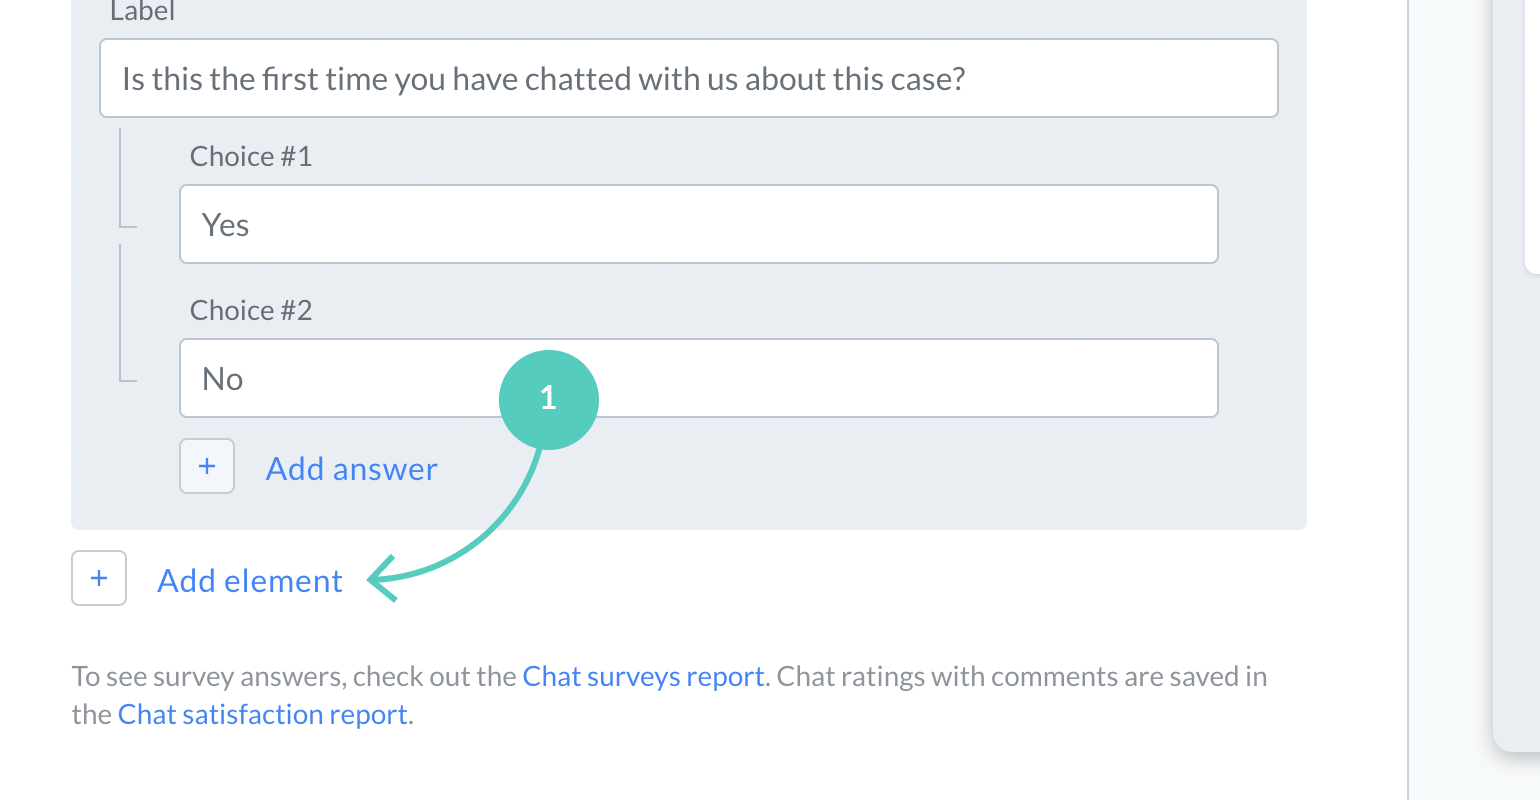 Add a field to post chat survey